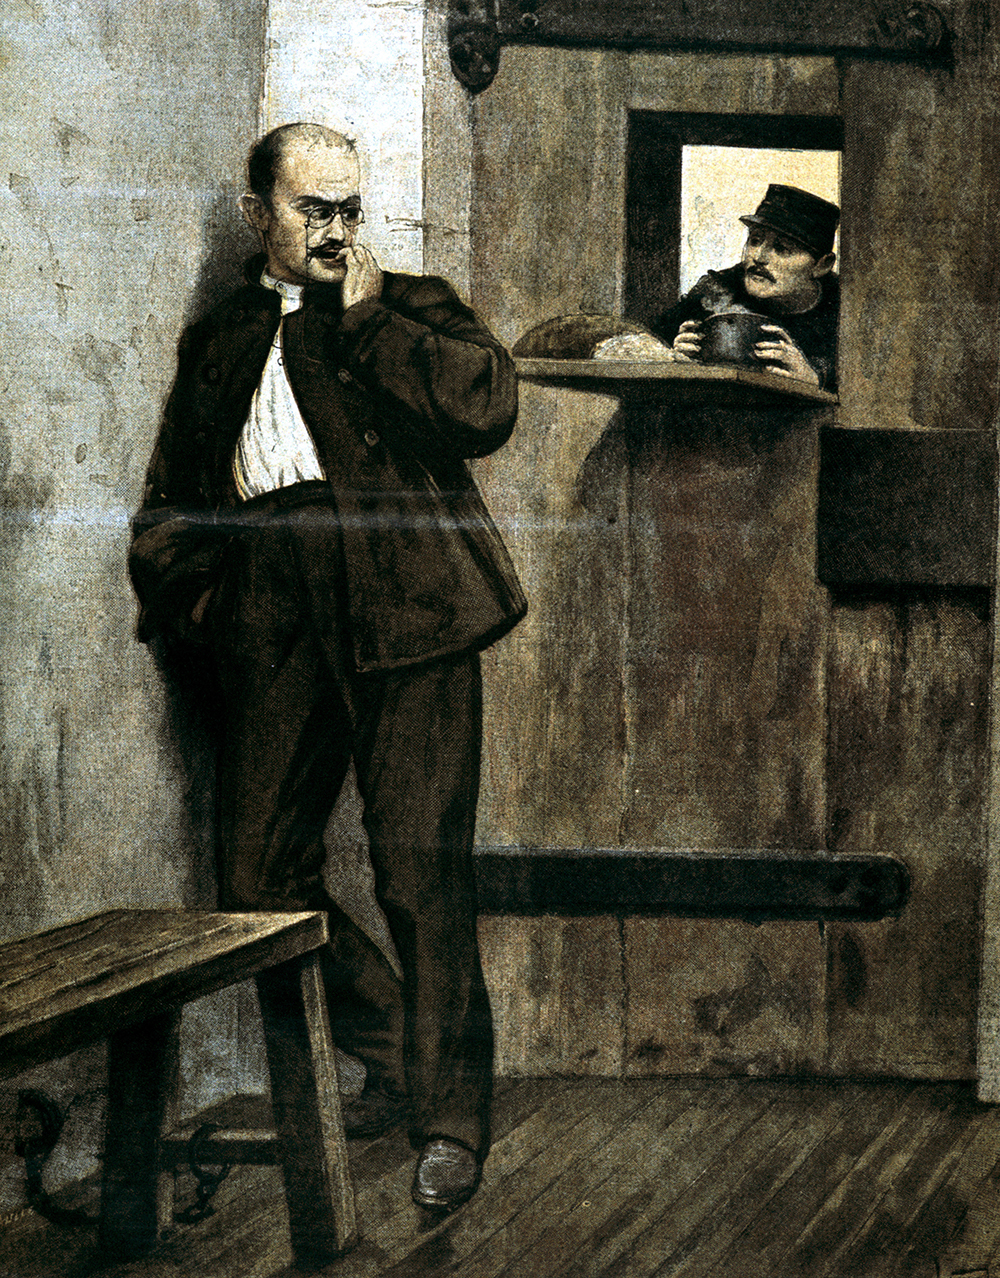 Alfred Dreyfus in Prison, engraving by Fortuné Méaulle after Lionel-Noël Royer, 1895. © HIP/Art Resource, NY.